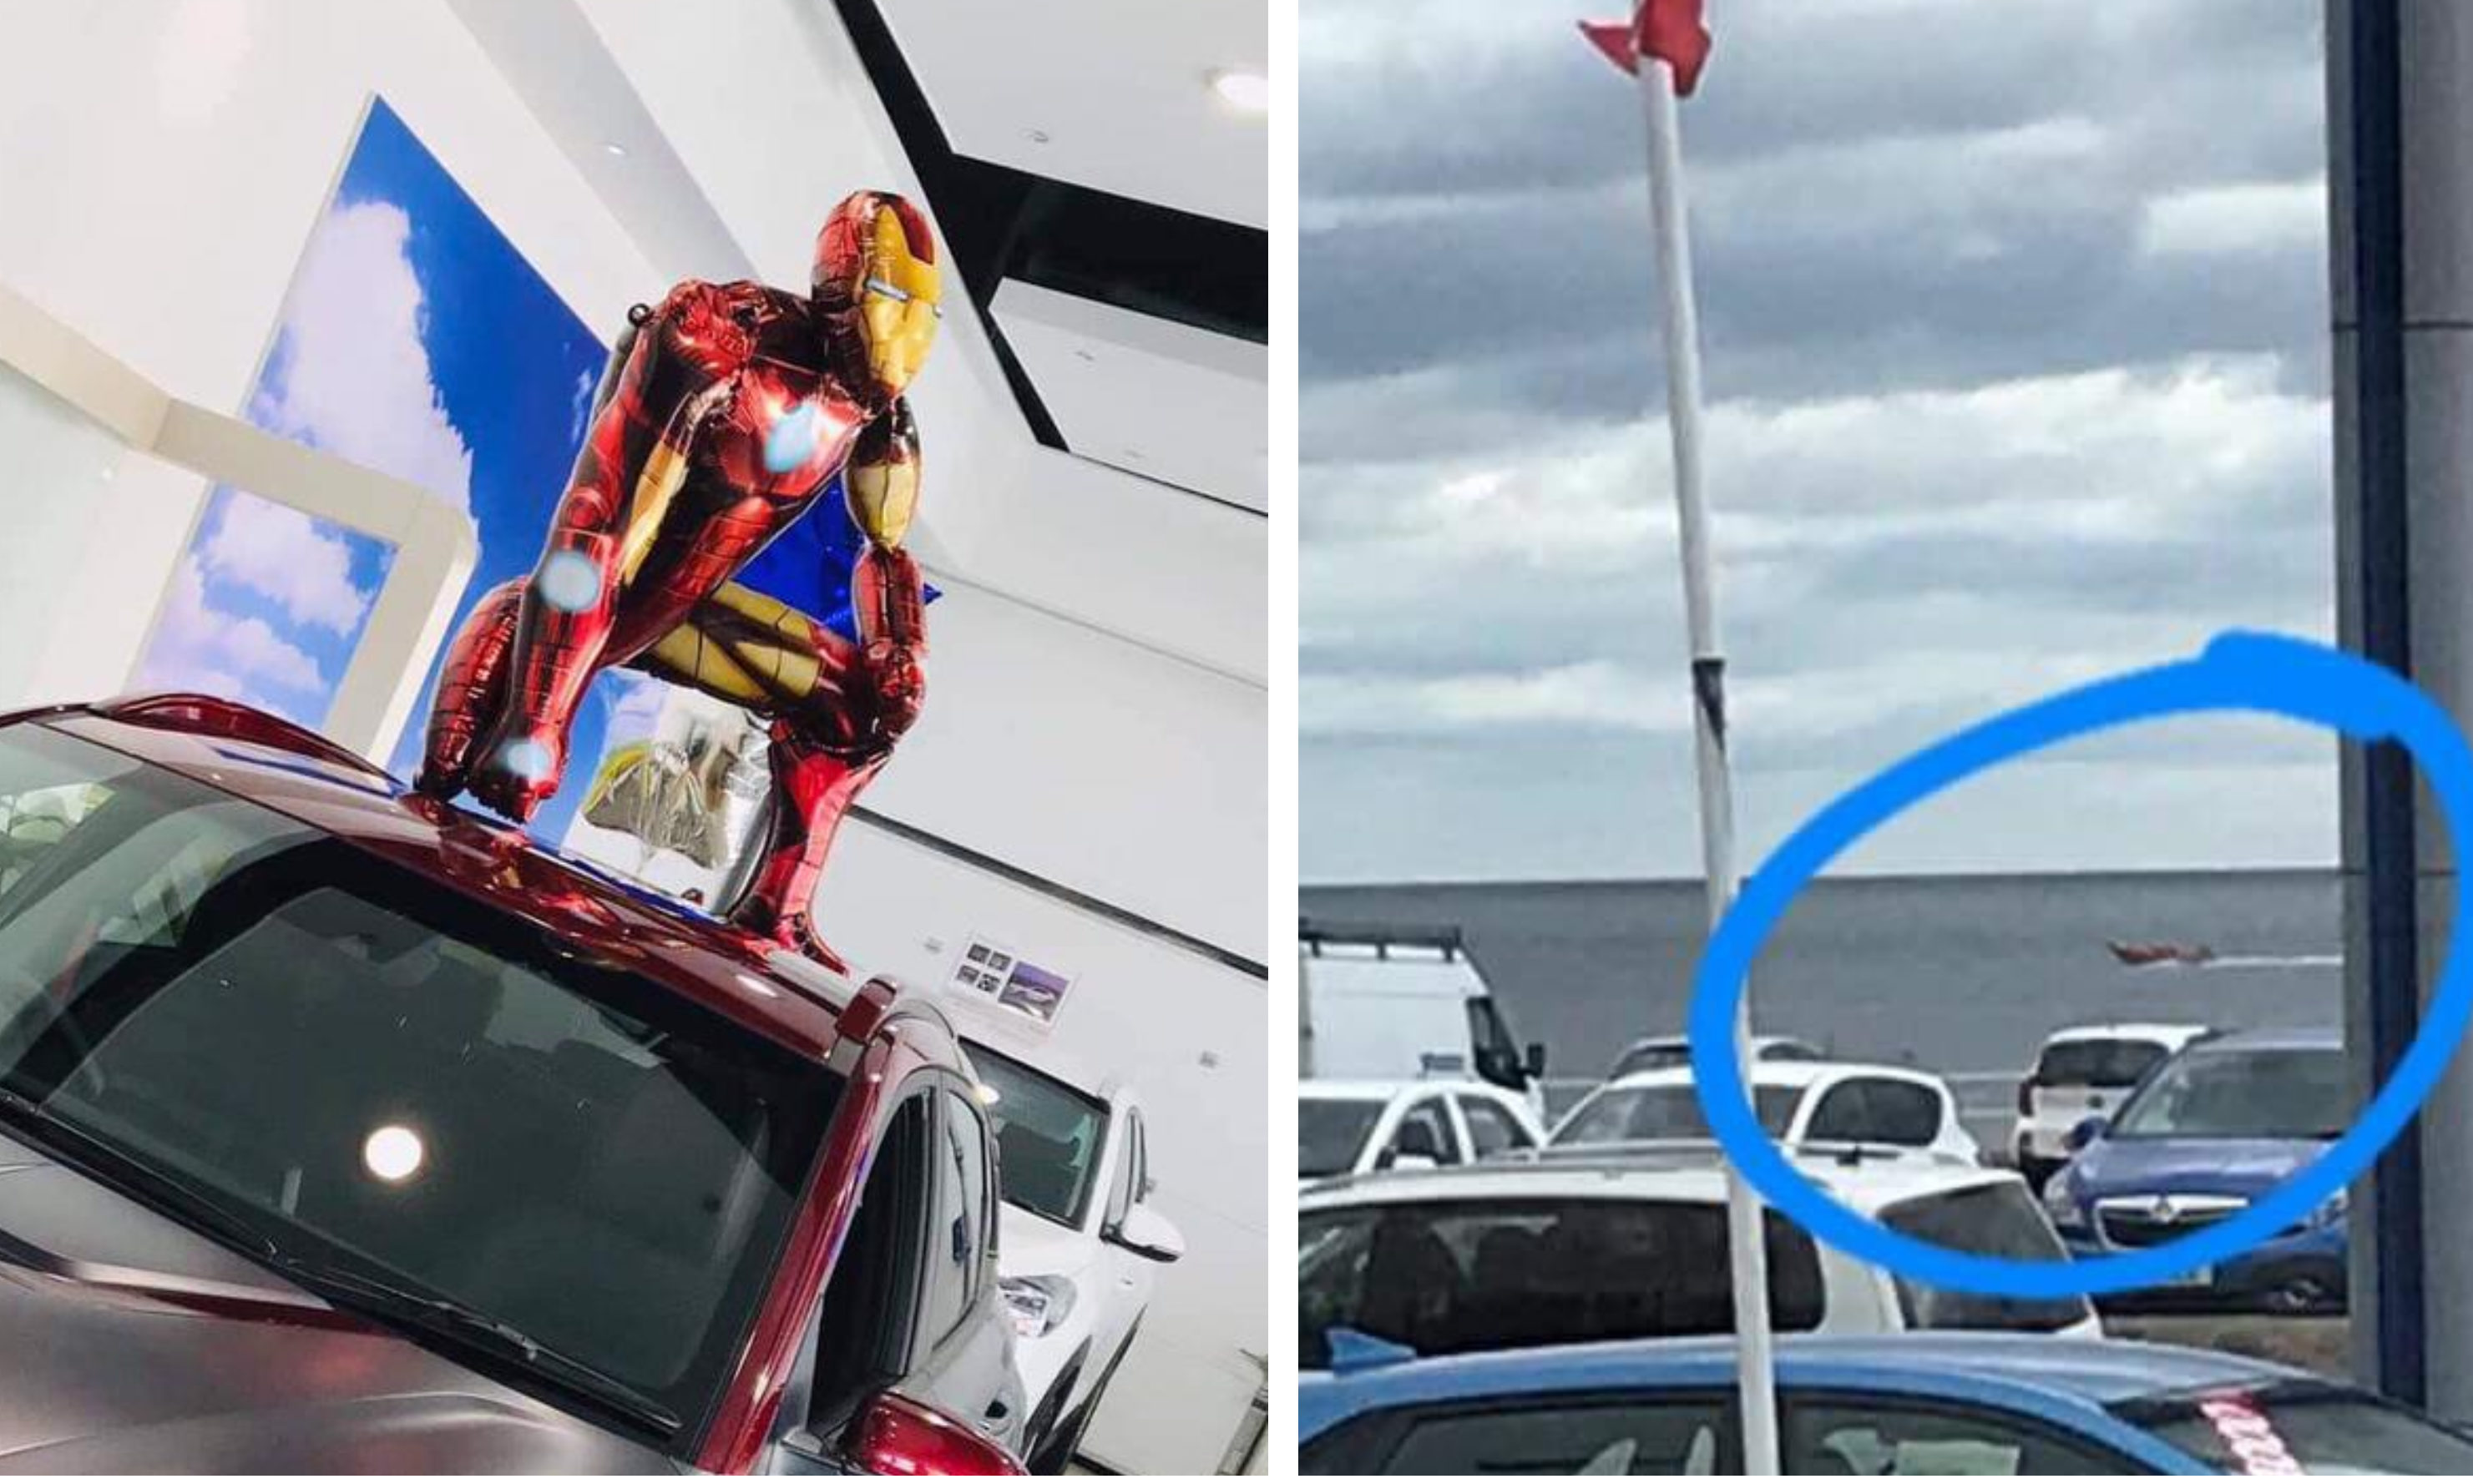 The Iron Man baloon narrowly avoided Endgame thanks to the Coastguard.